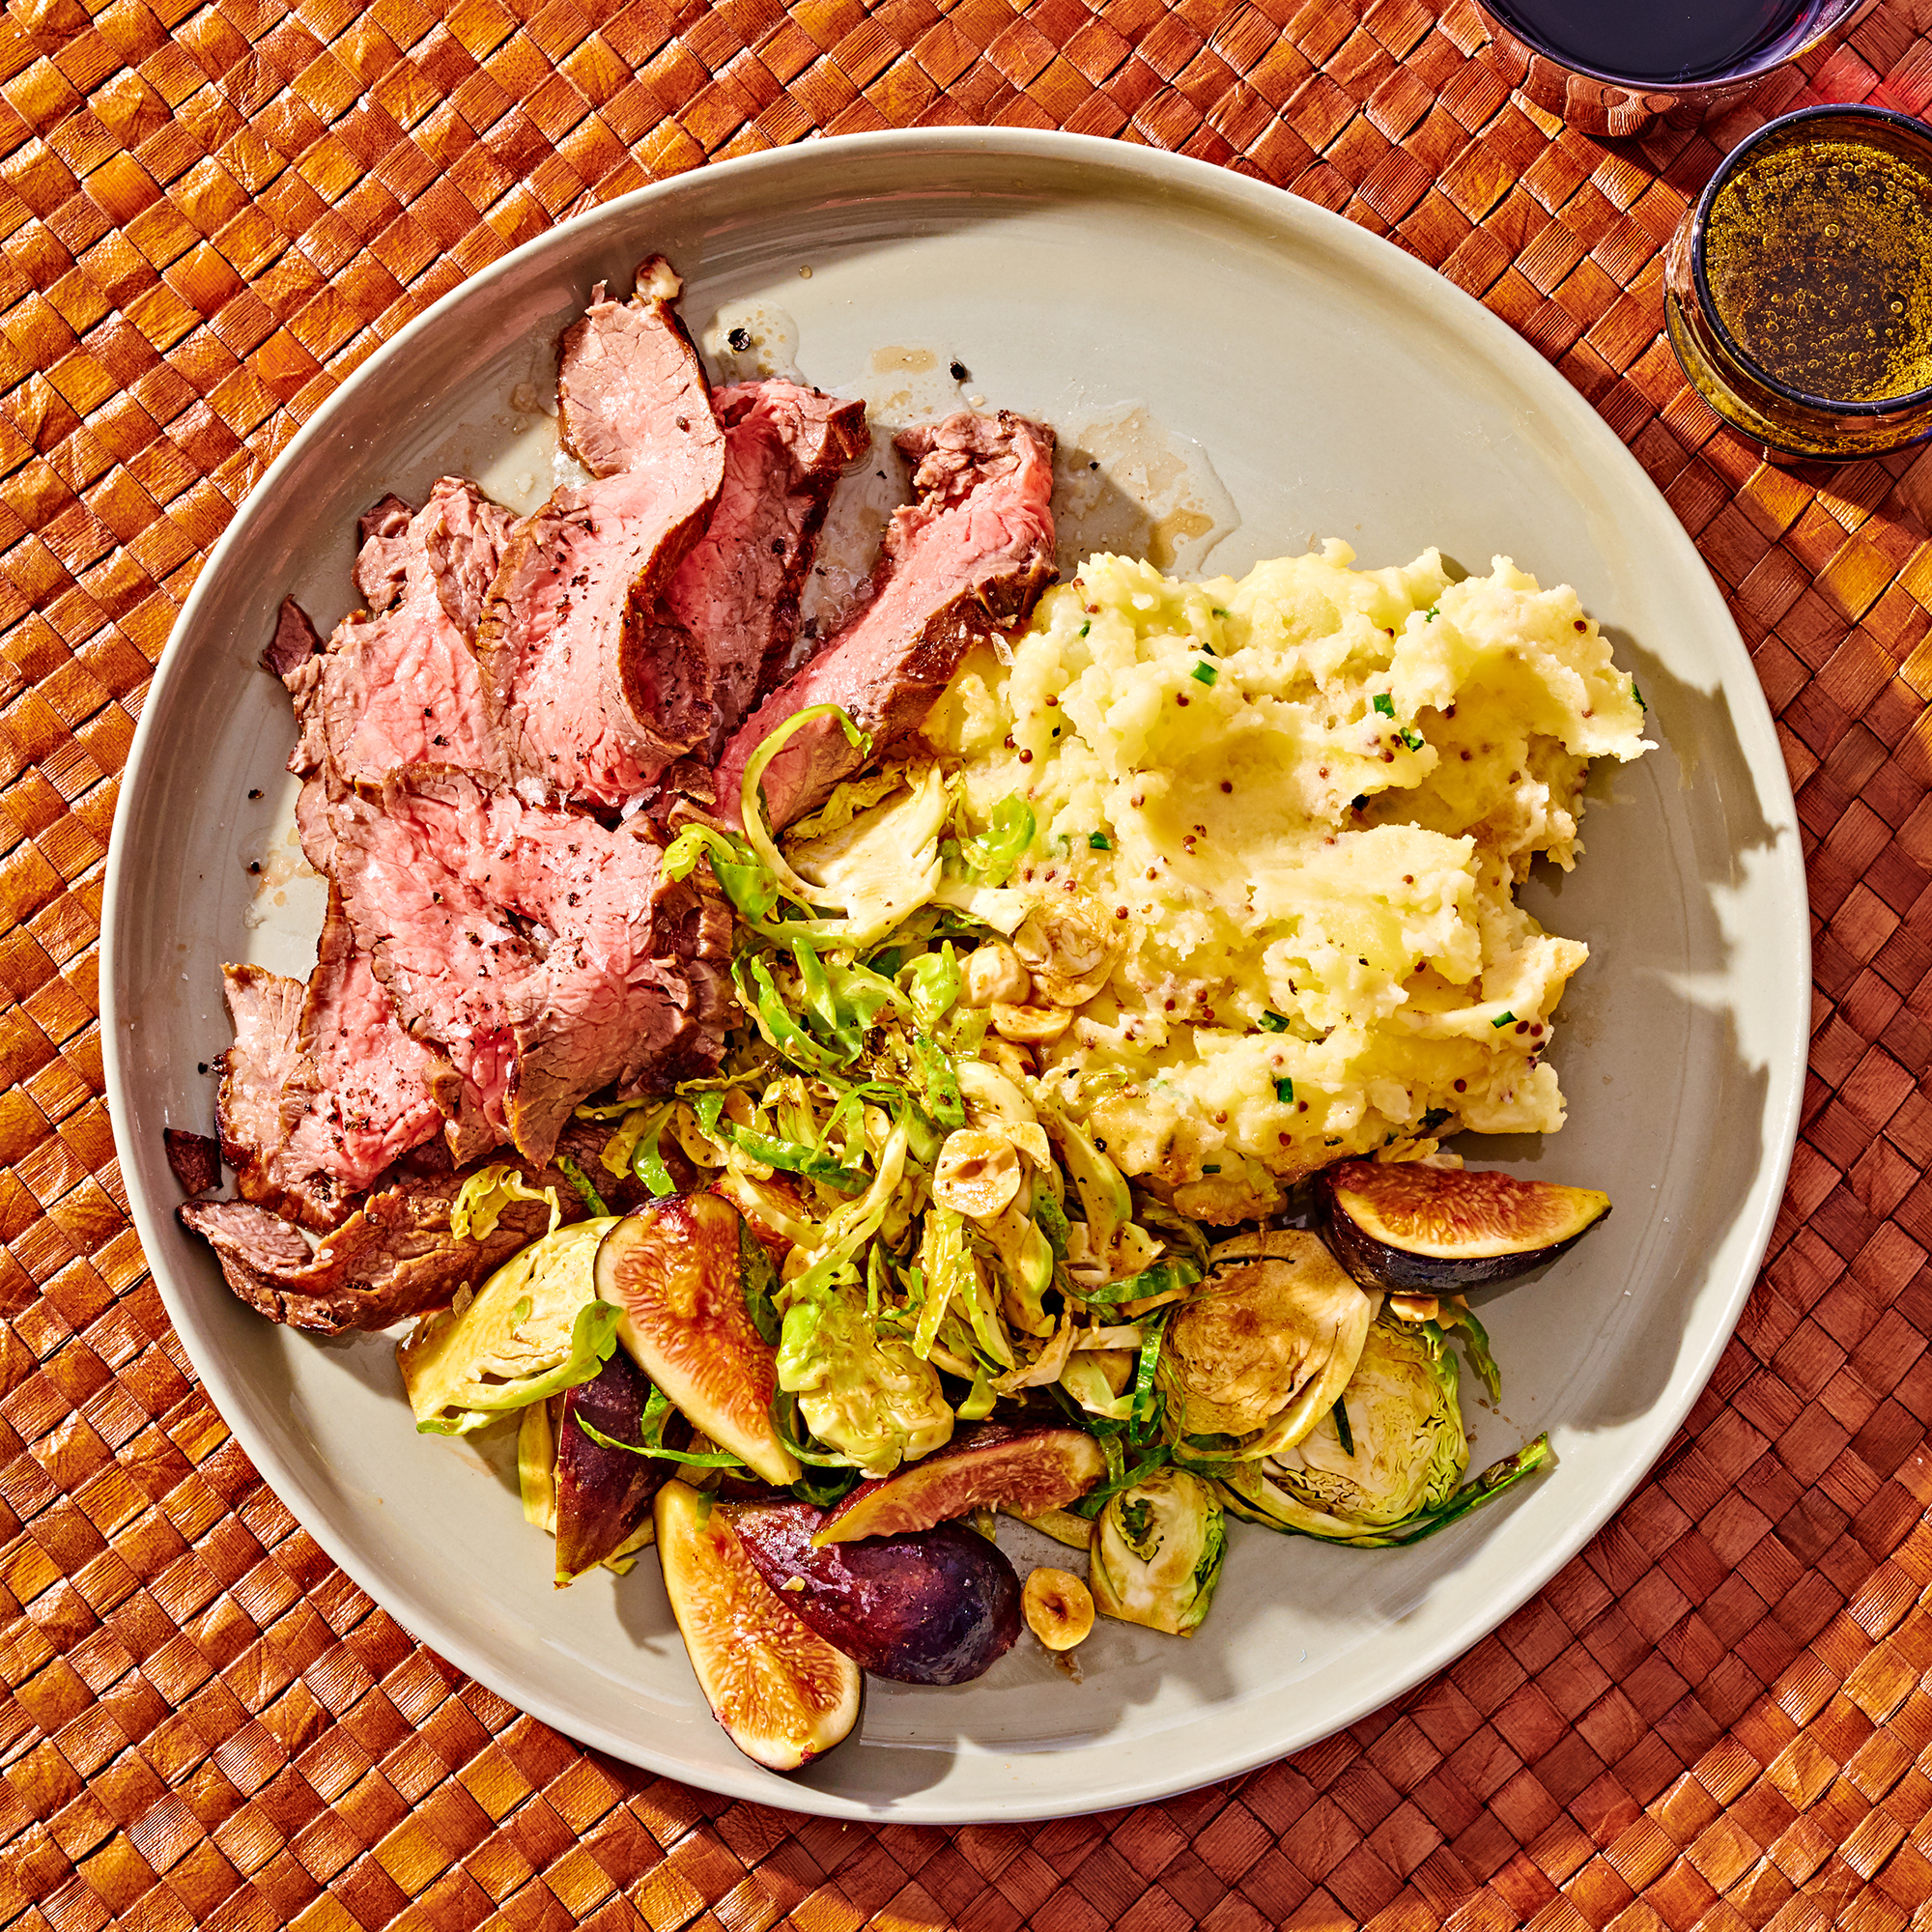 Balsamic Steak with Brussels Sprout Slaw & Mustard Mashed Potatoes